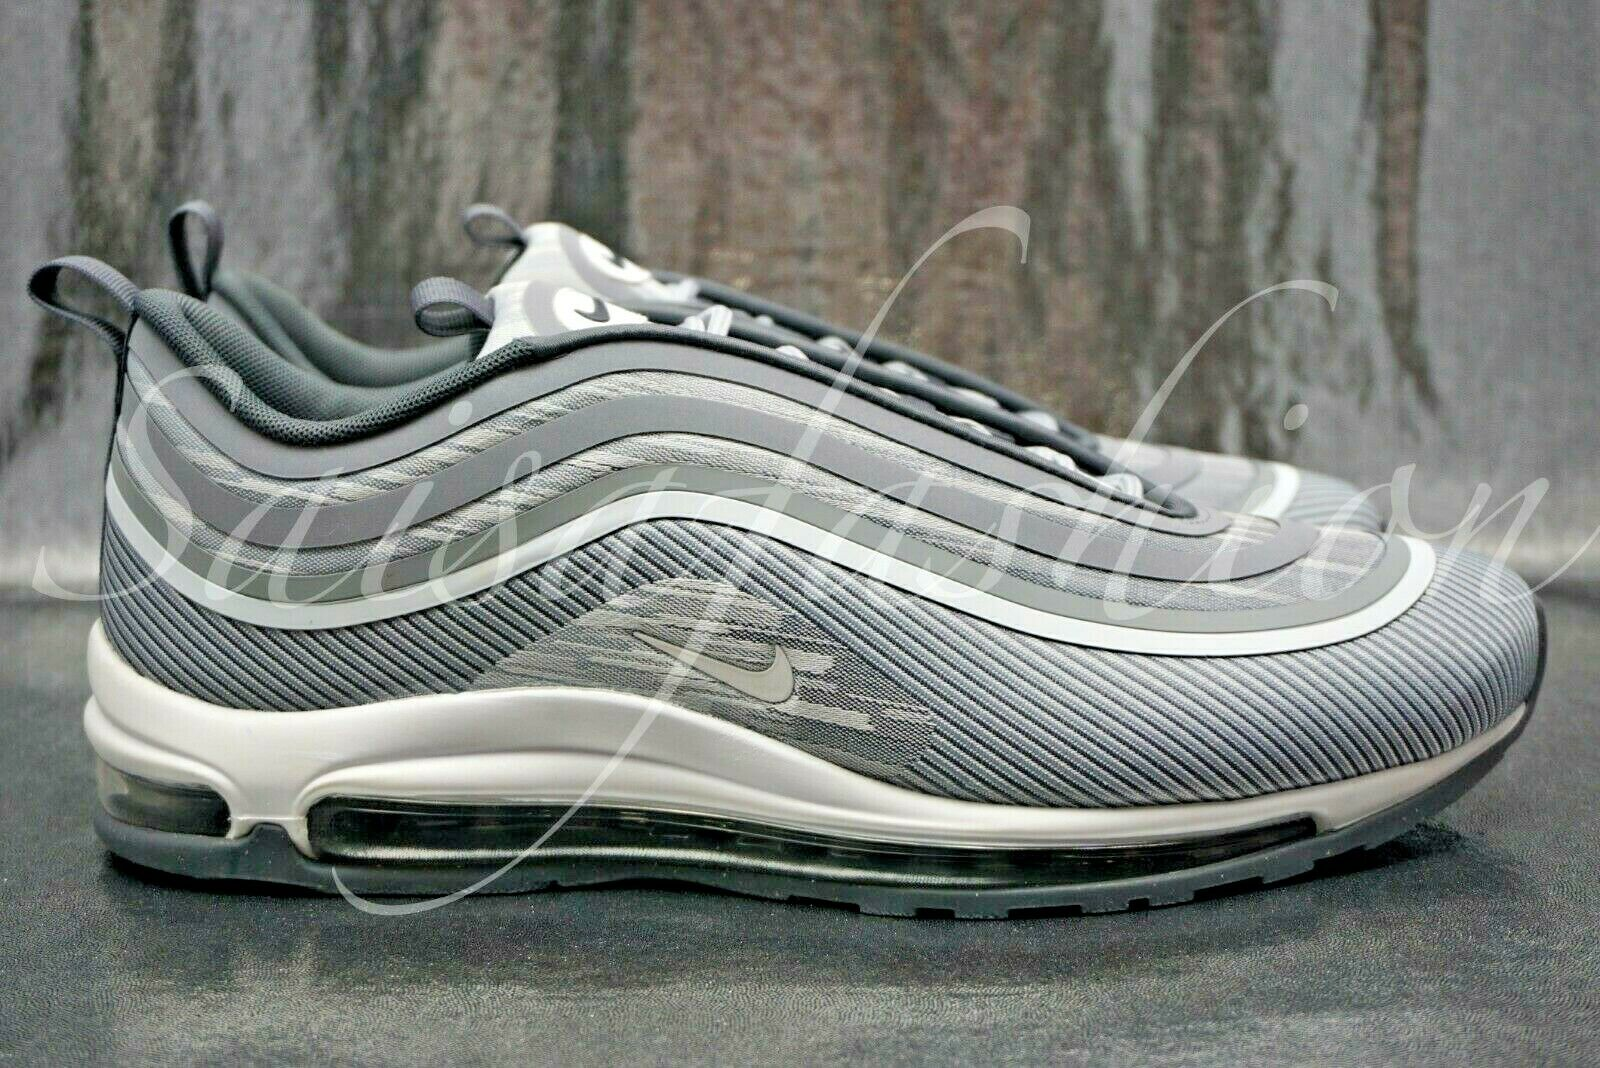 NIKE AIR MAX 97 UL '17 WOLF GREY WHITE-DARK GREY SIZE MEN'S 918356-007 Sz 8